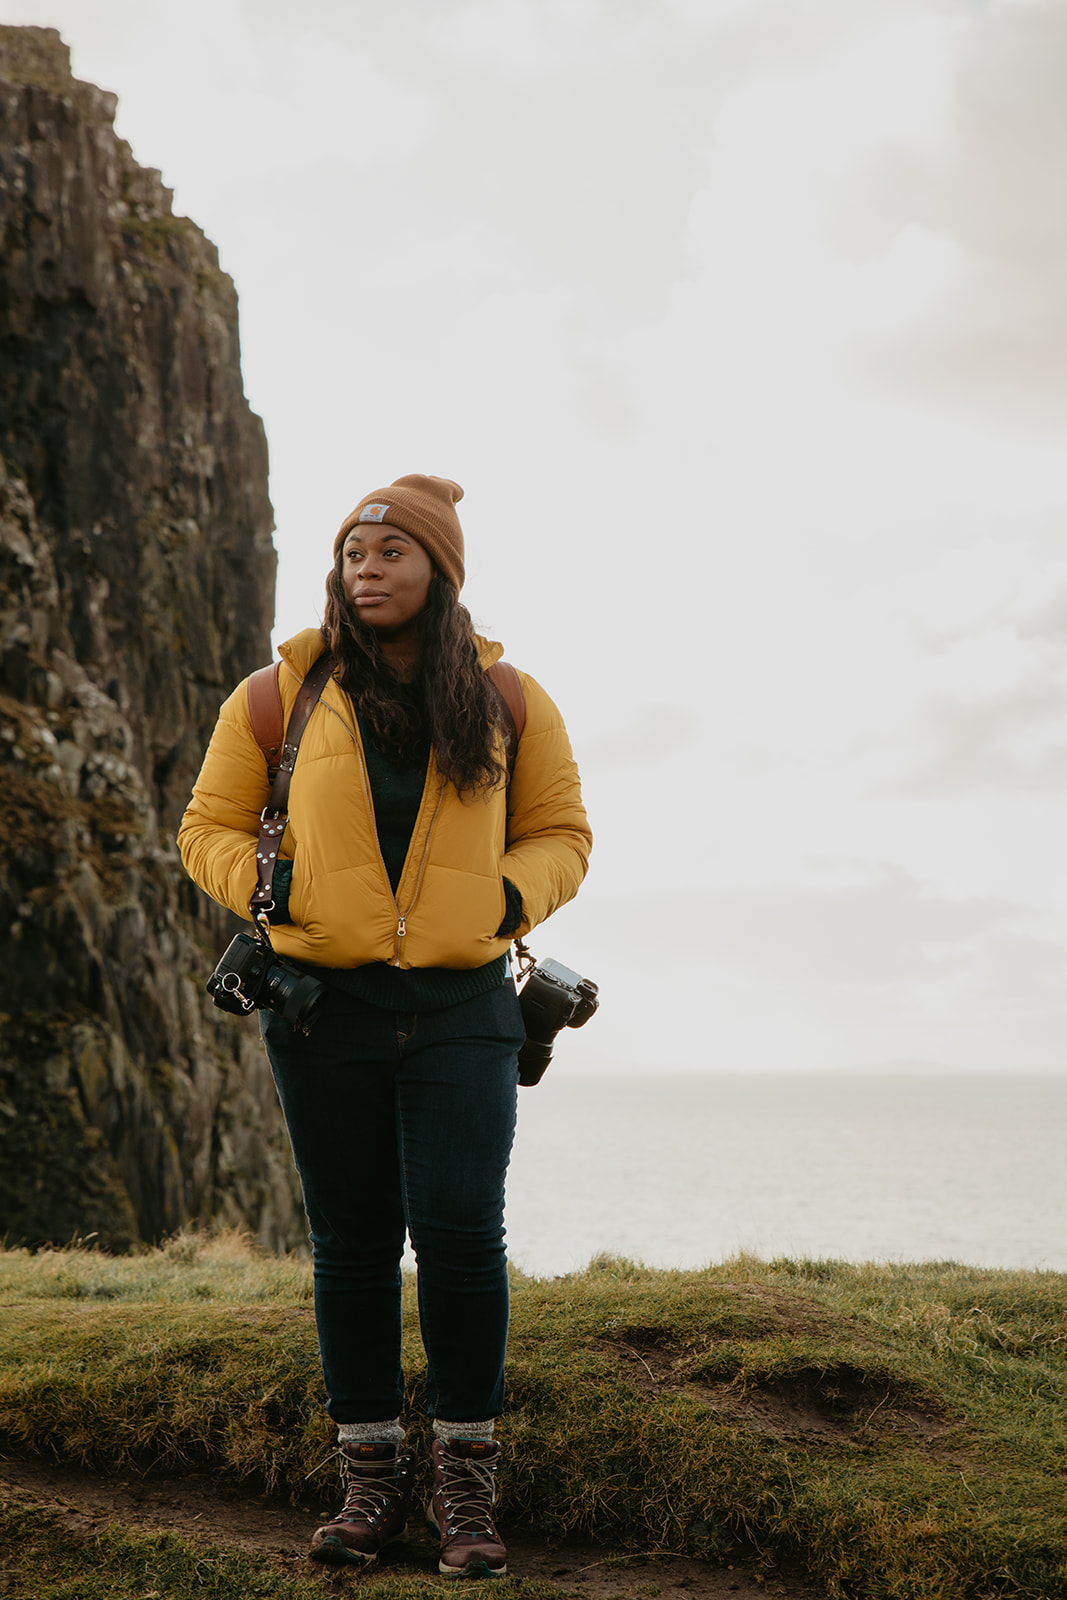 Photographer standing at Neist Point in Scotland wearing a yellow jacket